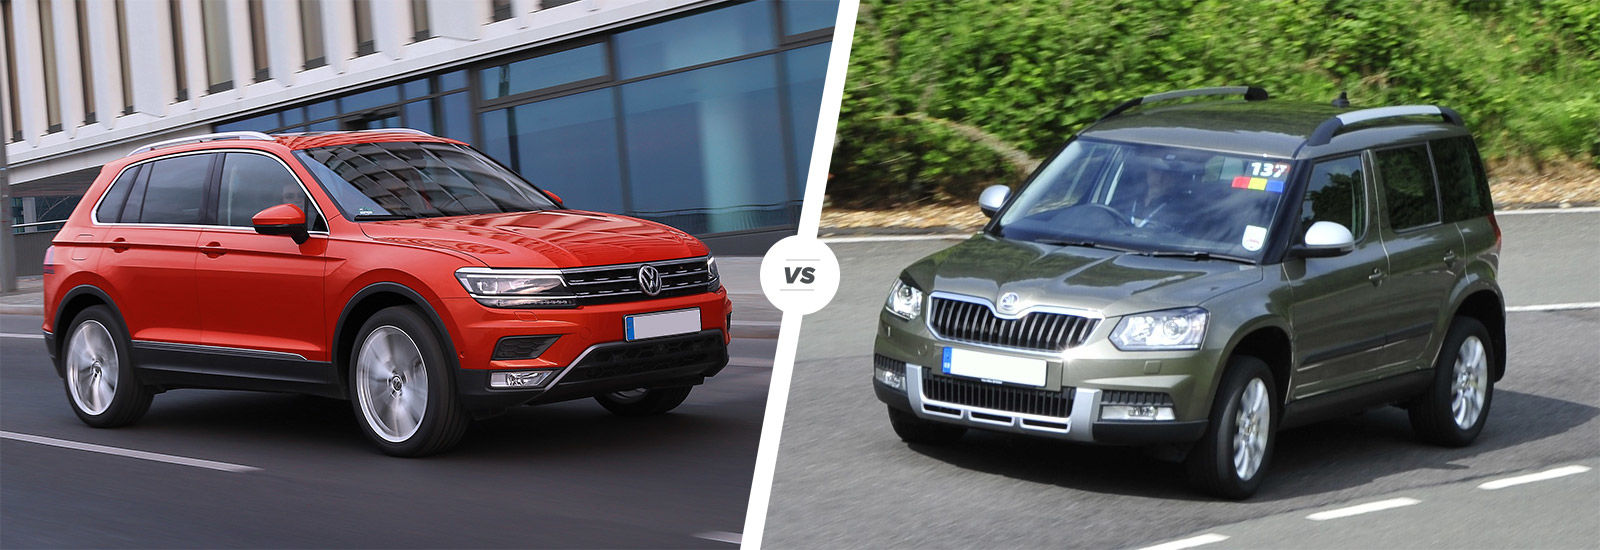 Vw Tiguan Vs Skoda Yeti Suv Comparison Carwow